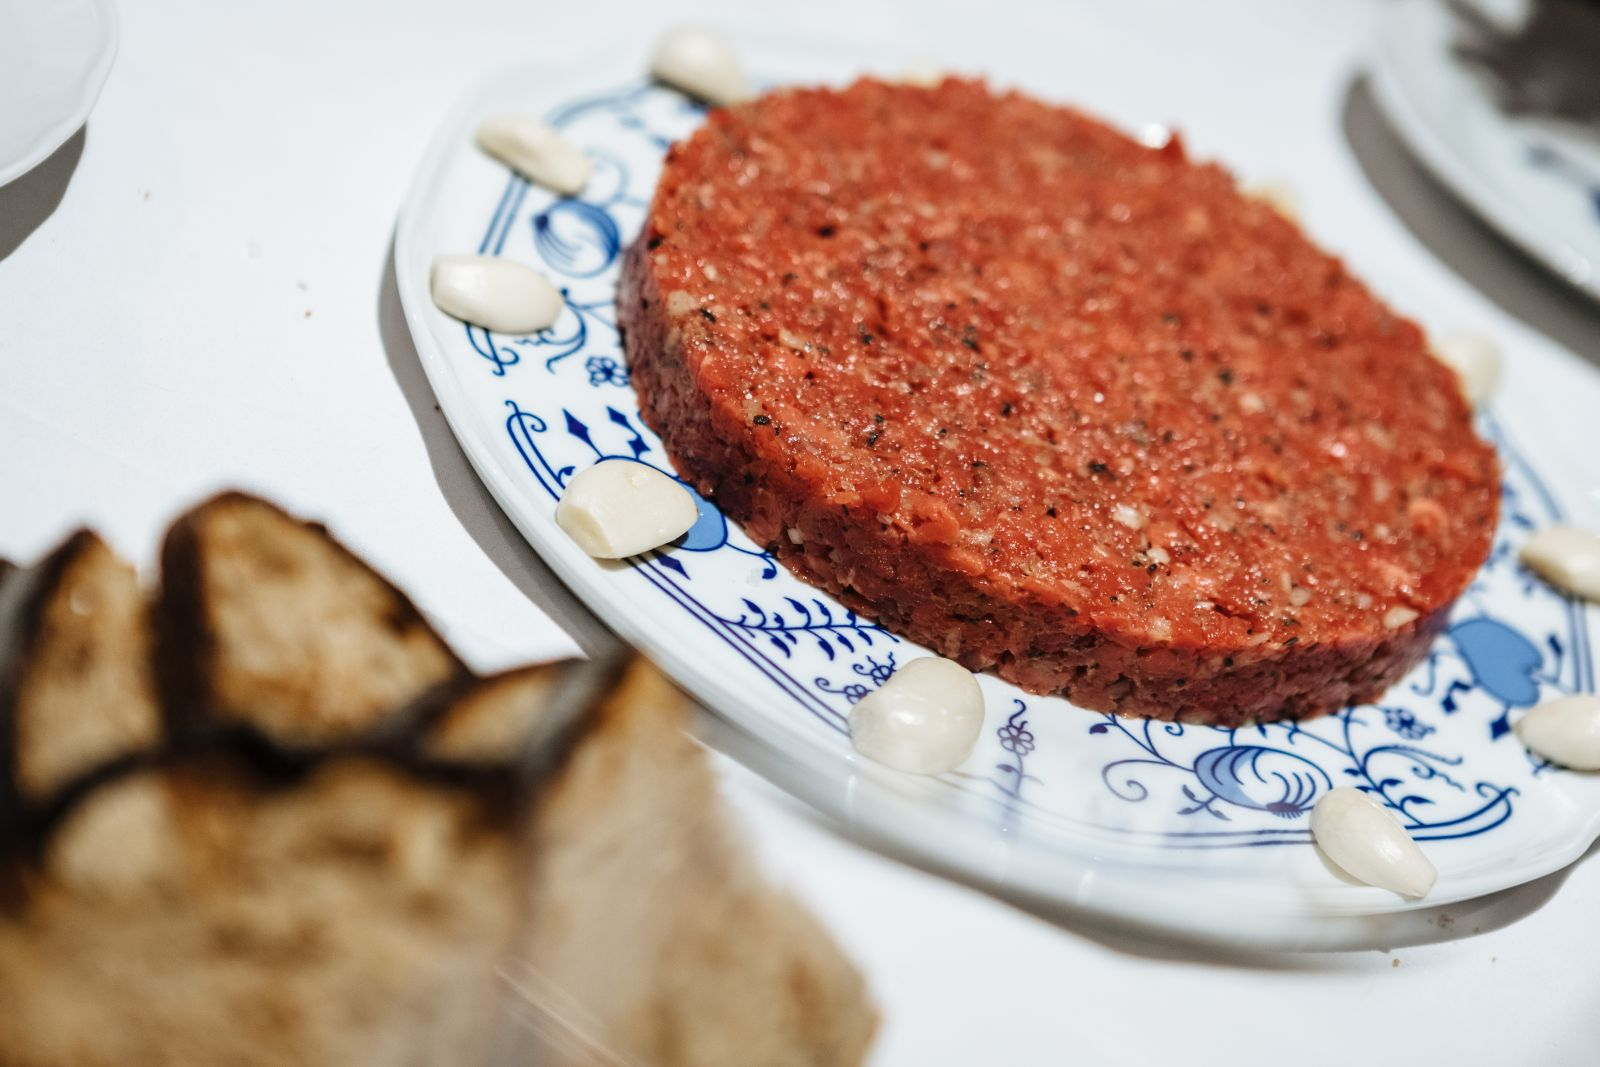 A substantial portion of beef tartare hiding a secret ingredient, can you identify it?